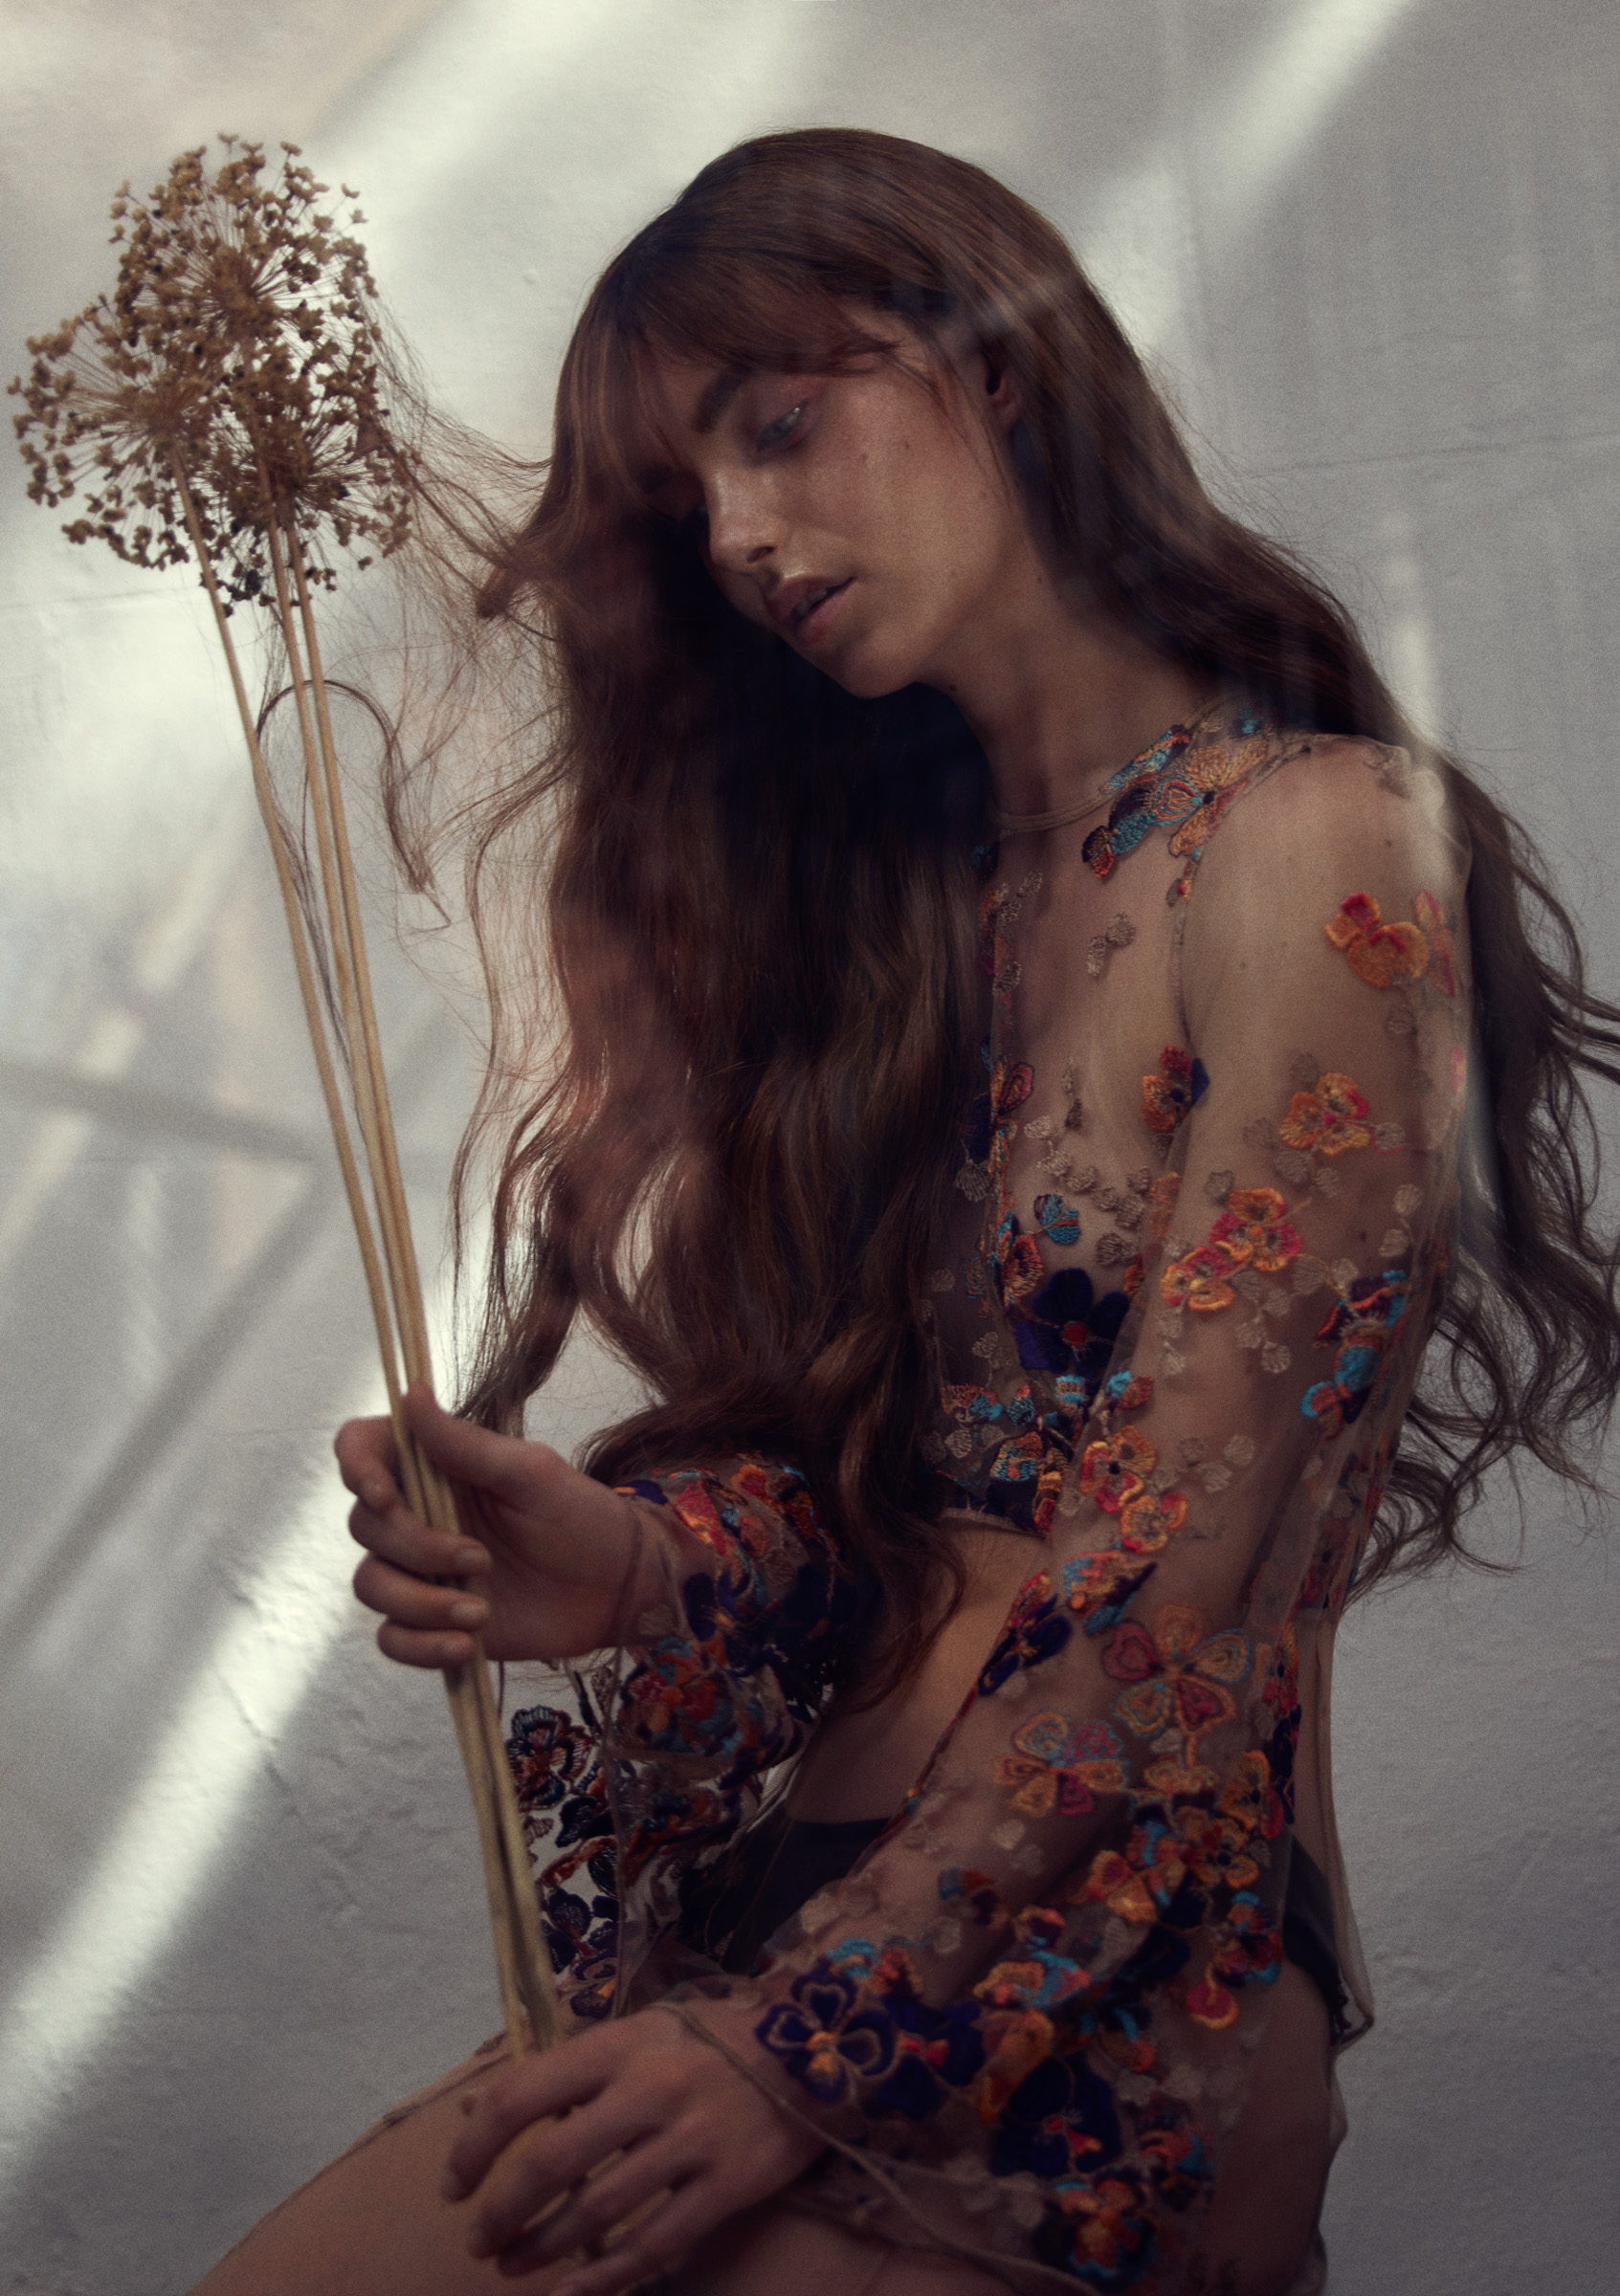 Jack-Eames-Ali-Pirzadeh-Wigs-Monet-Flowers-Hair-Beauty-Photography-Campaign-01.jpg